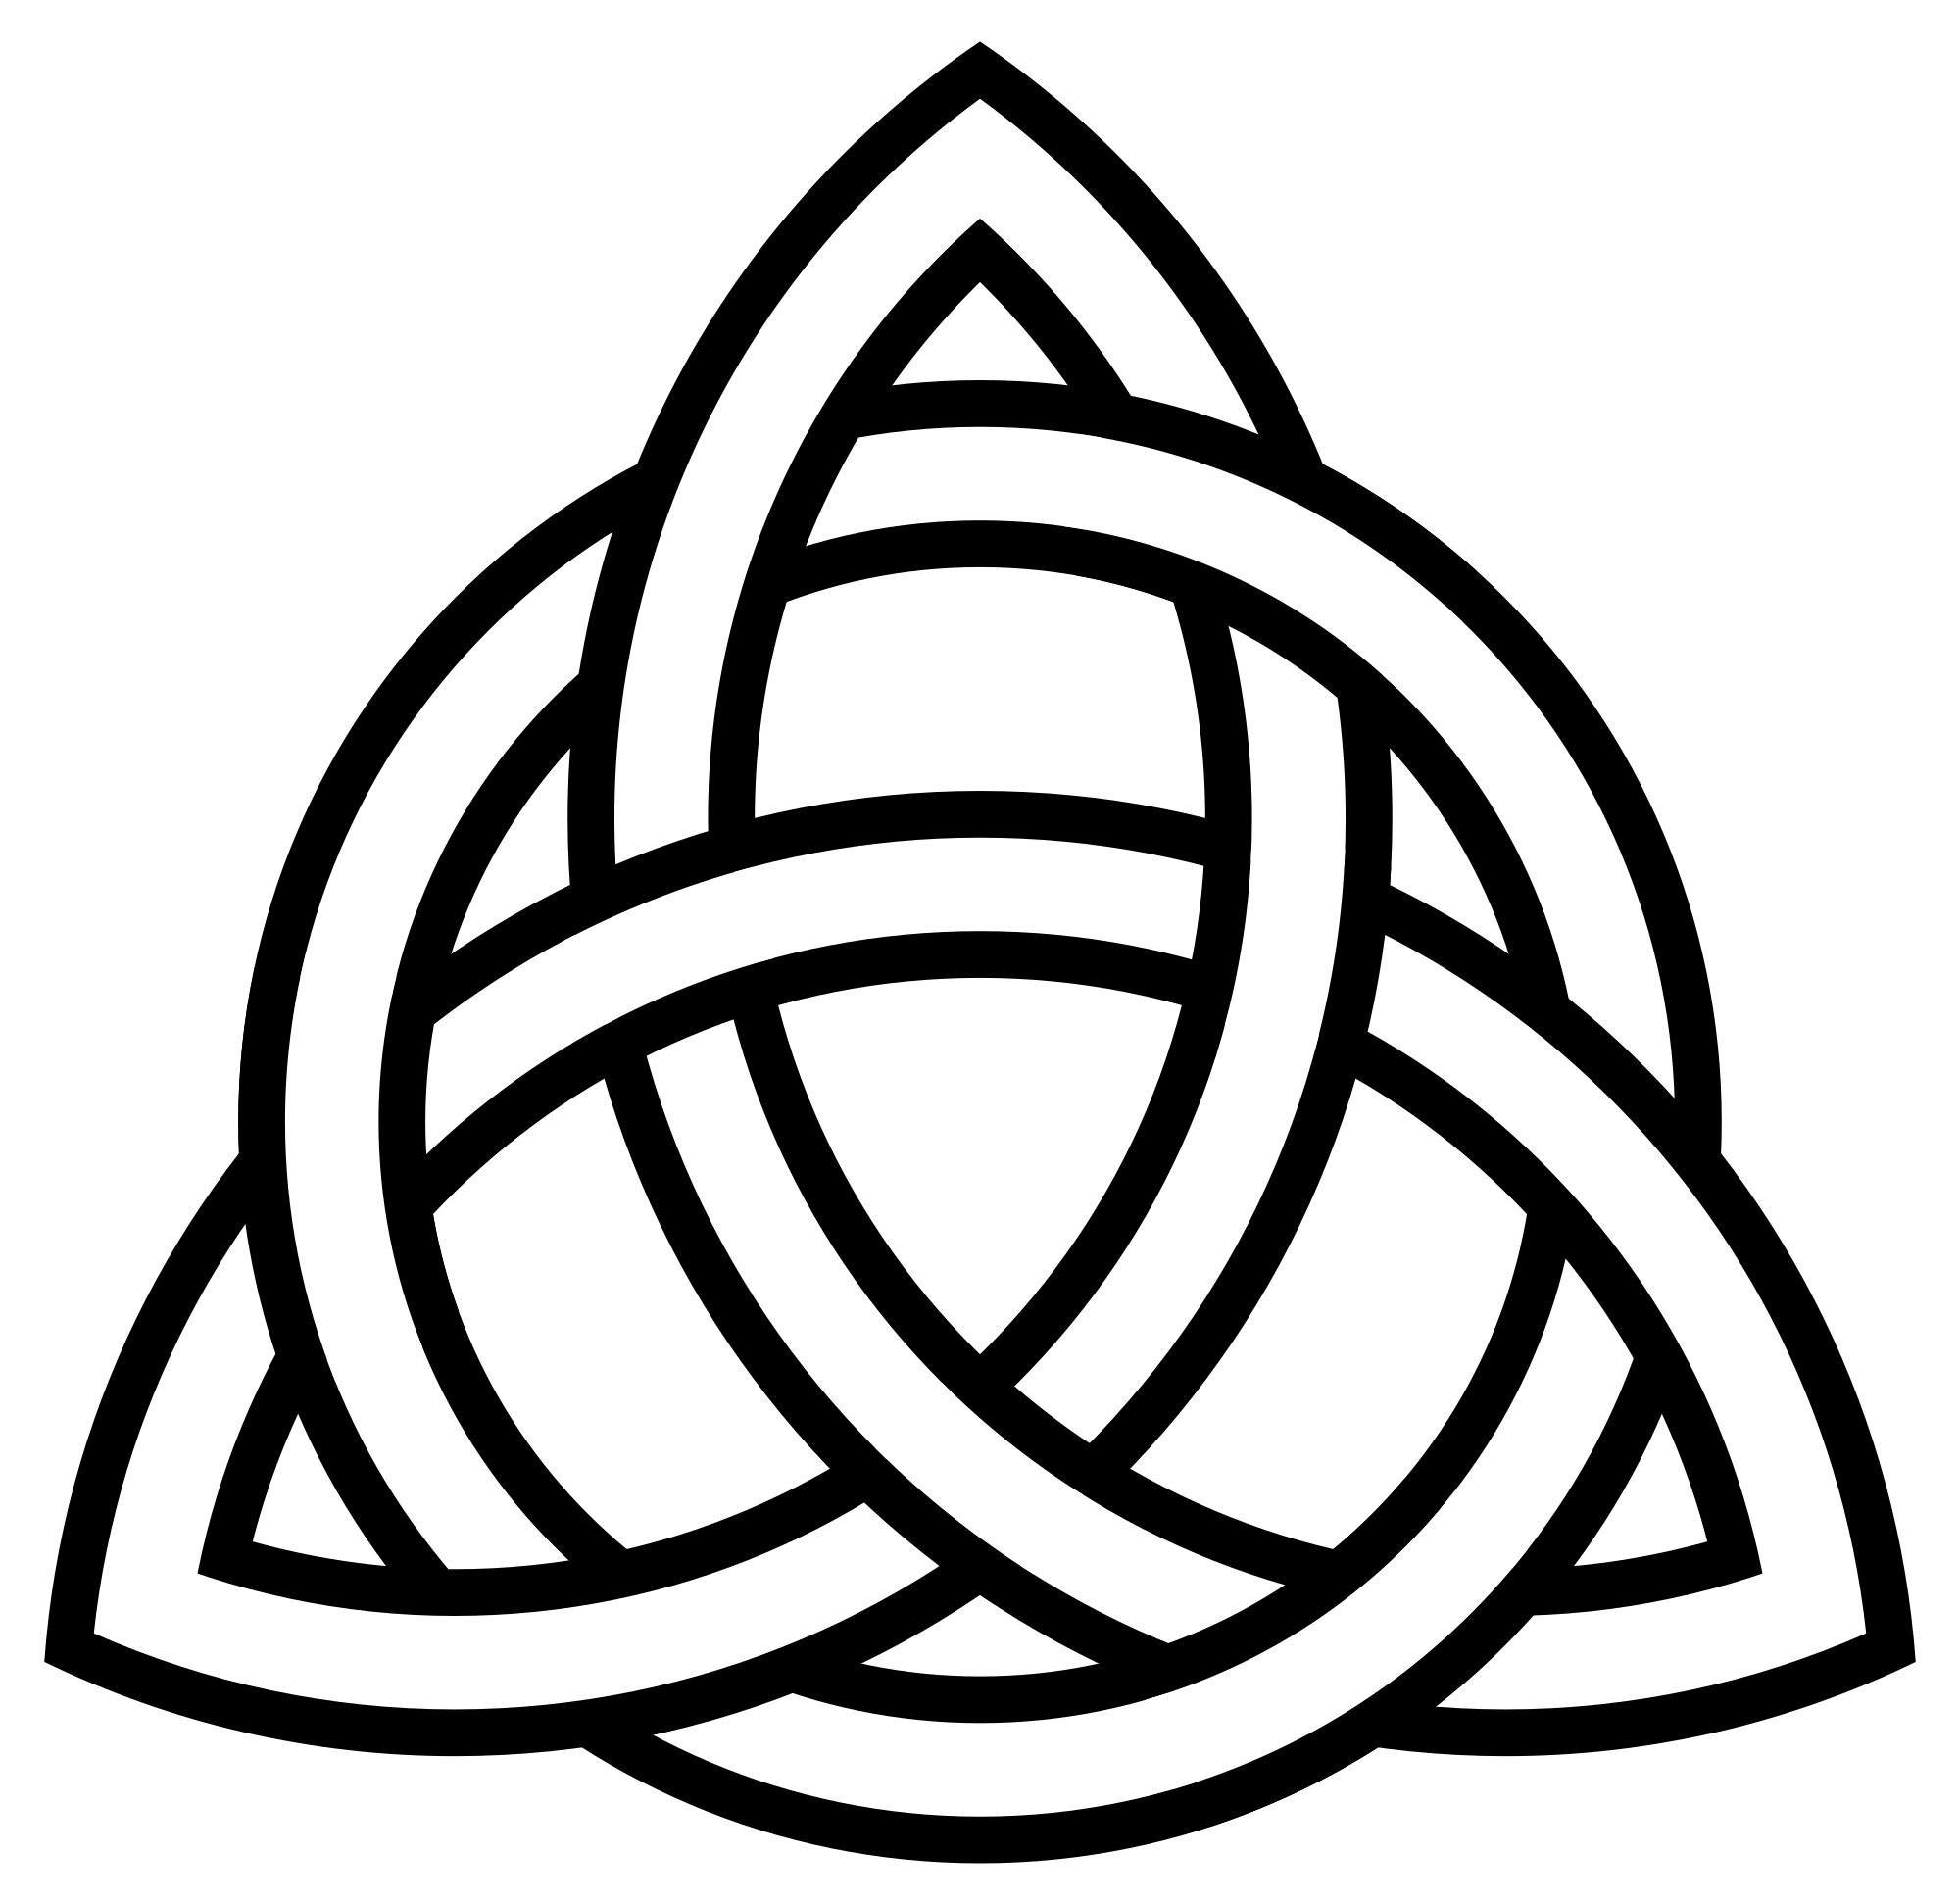 Png interlaced meaning. File triquetra circle svg